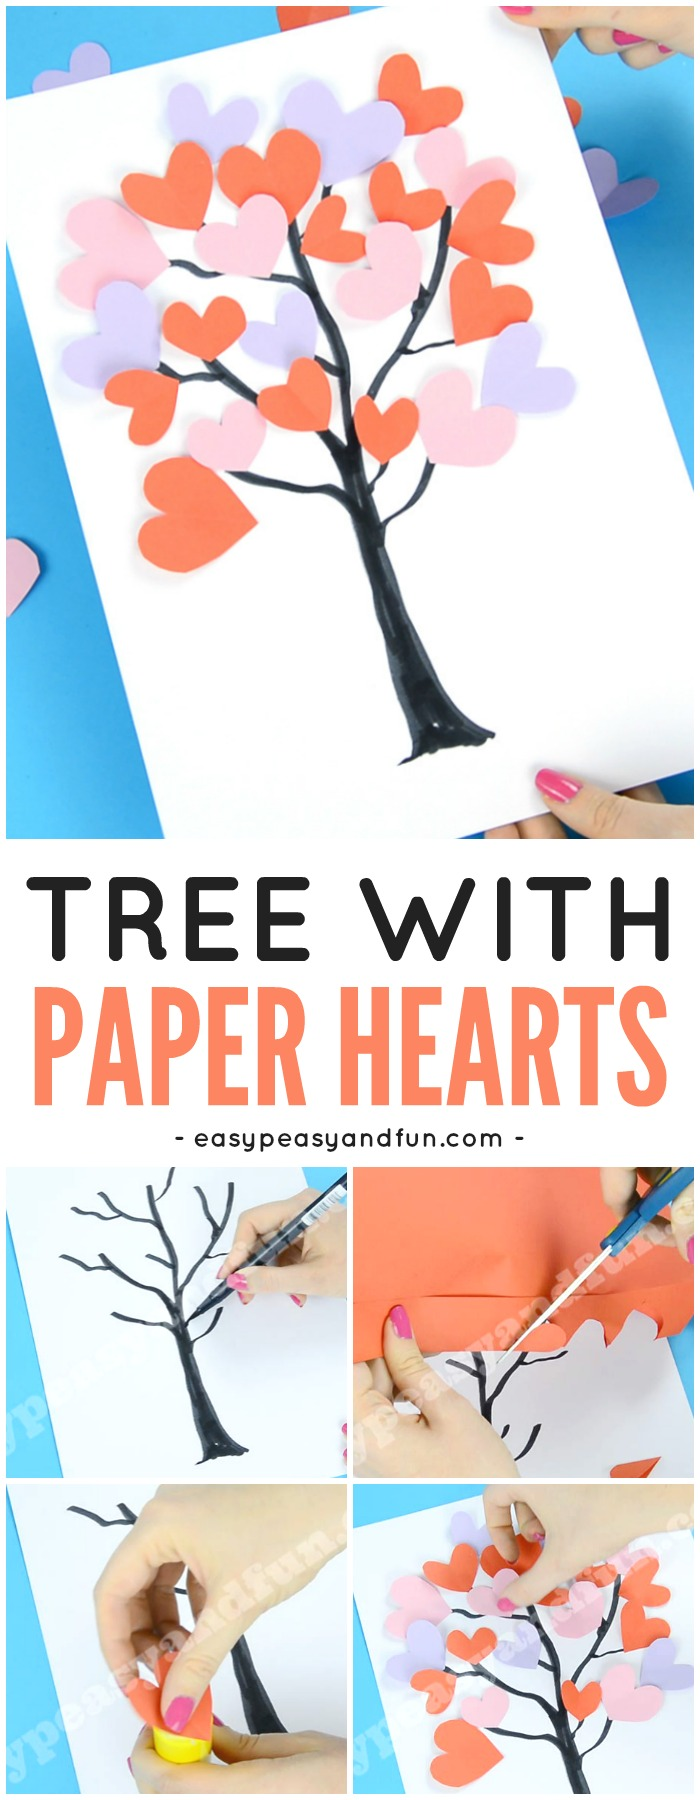 Tree With Paper Hearts Art Valentine's day Craft for Kids #Valentinesdaycraftsforkids #heartcraftsforkids #craftsforkids